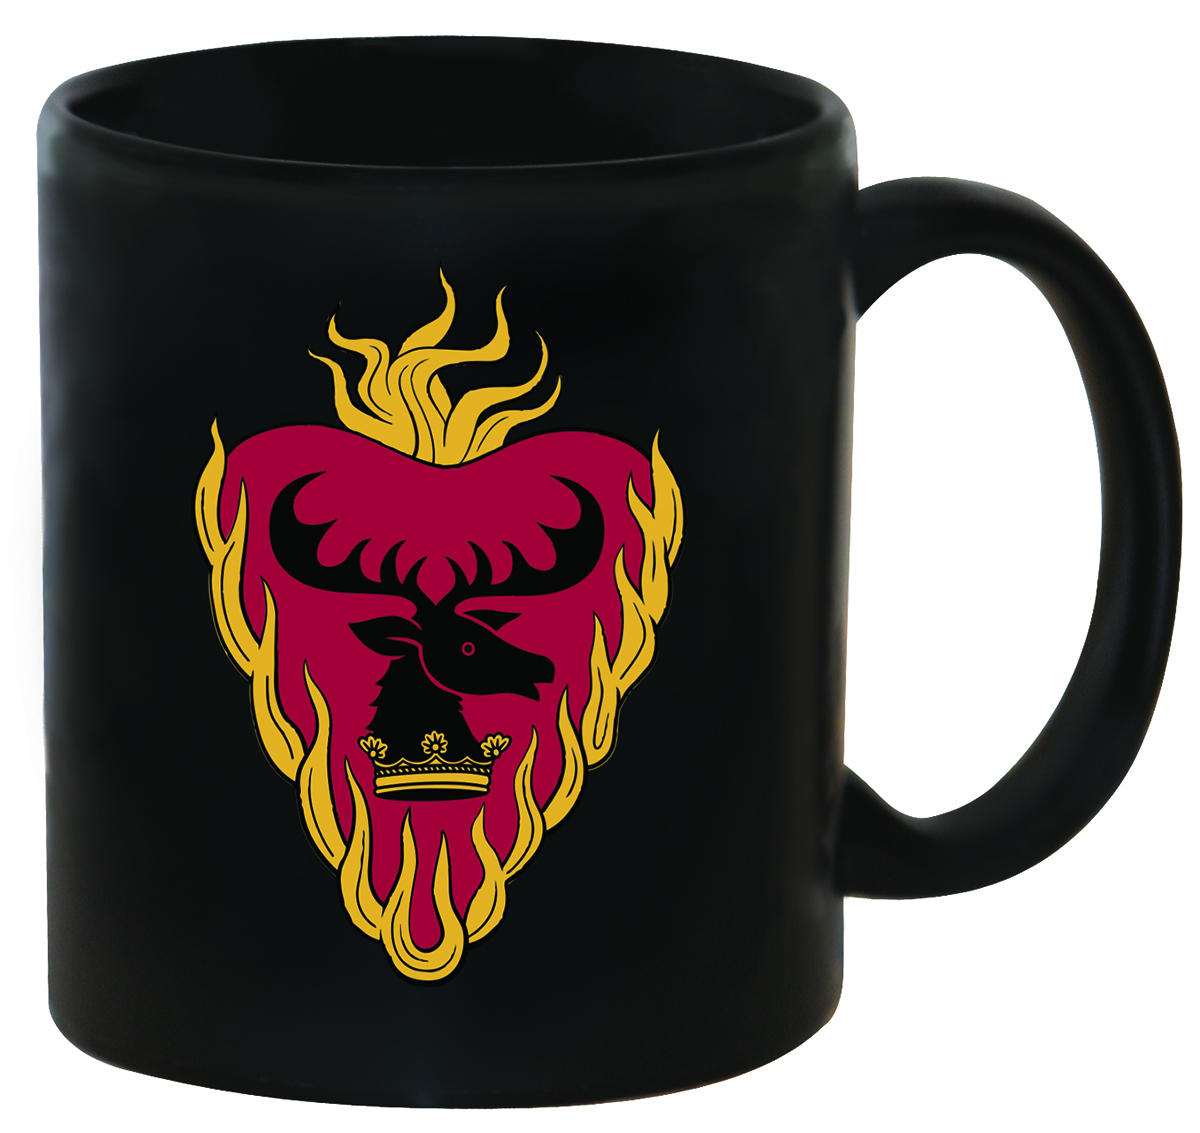 GAME OF THRONES COFFEE MUG STANNIS